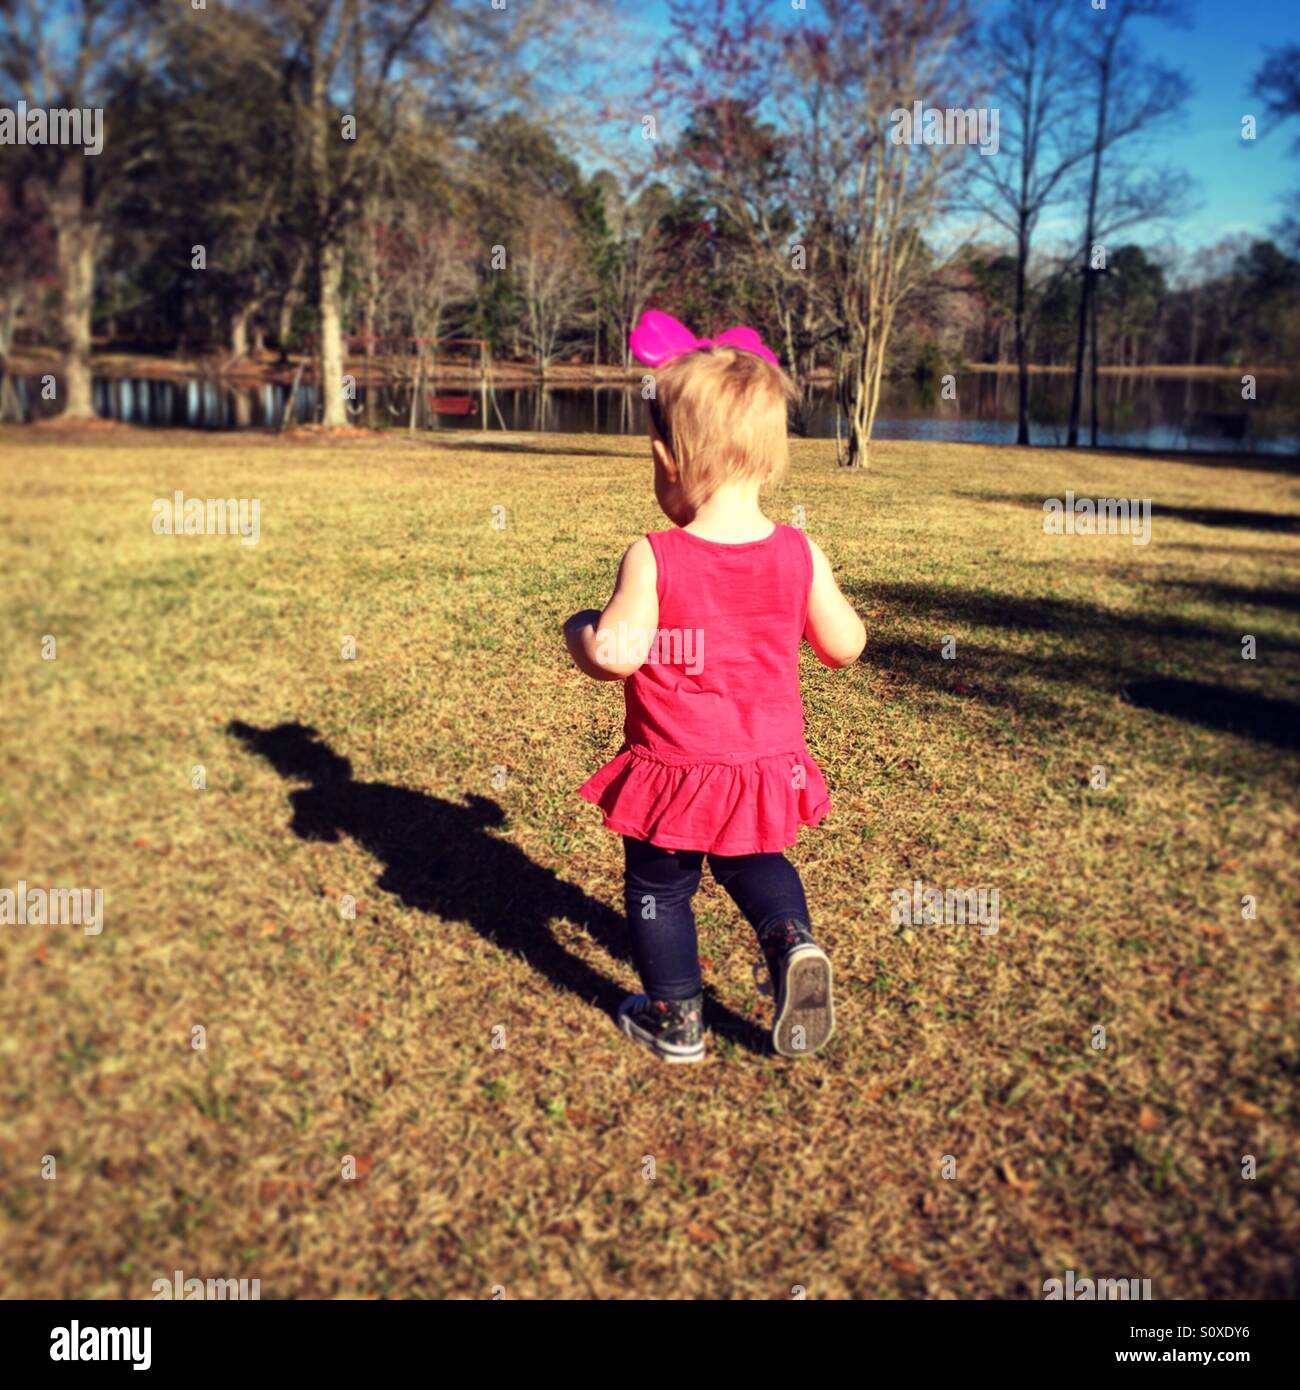 Baby girl outside chasing shadow Stock Photo